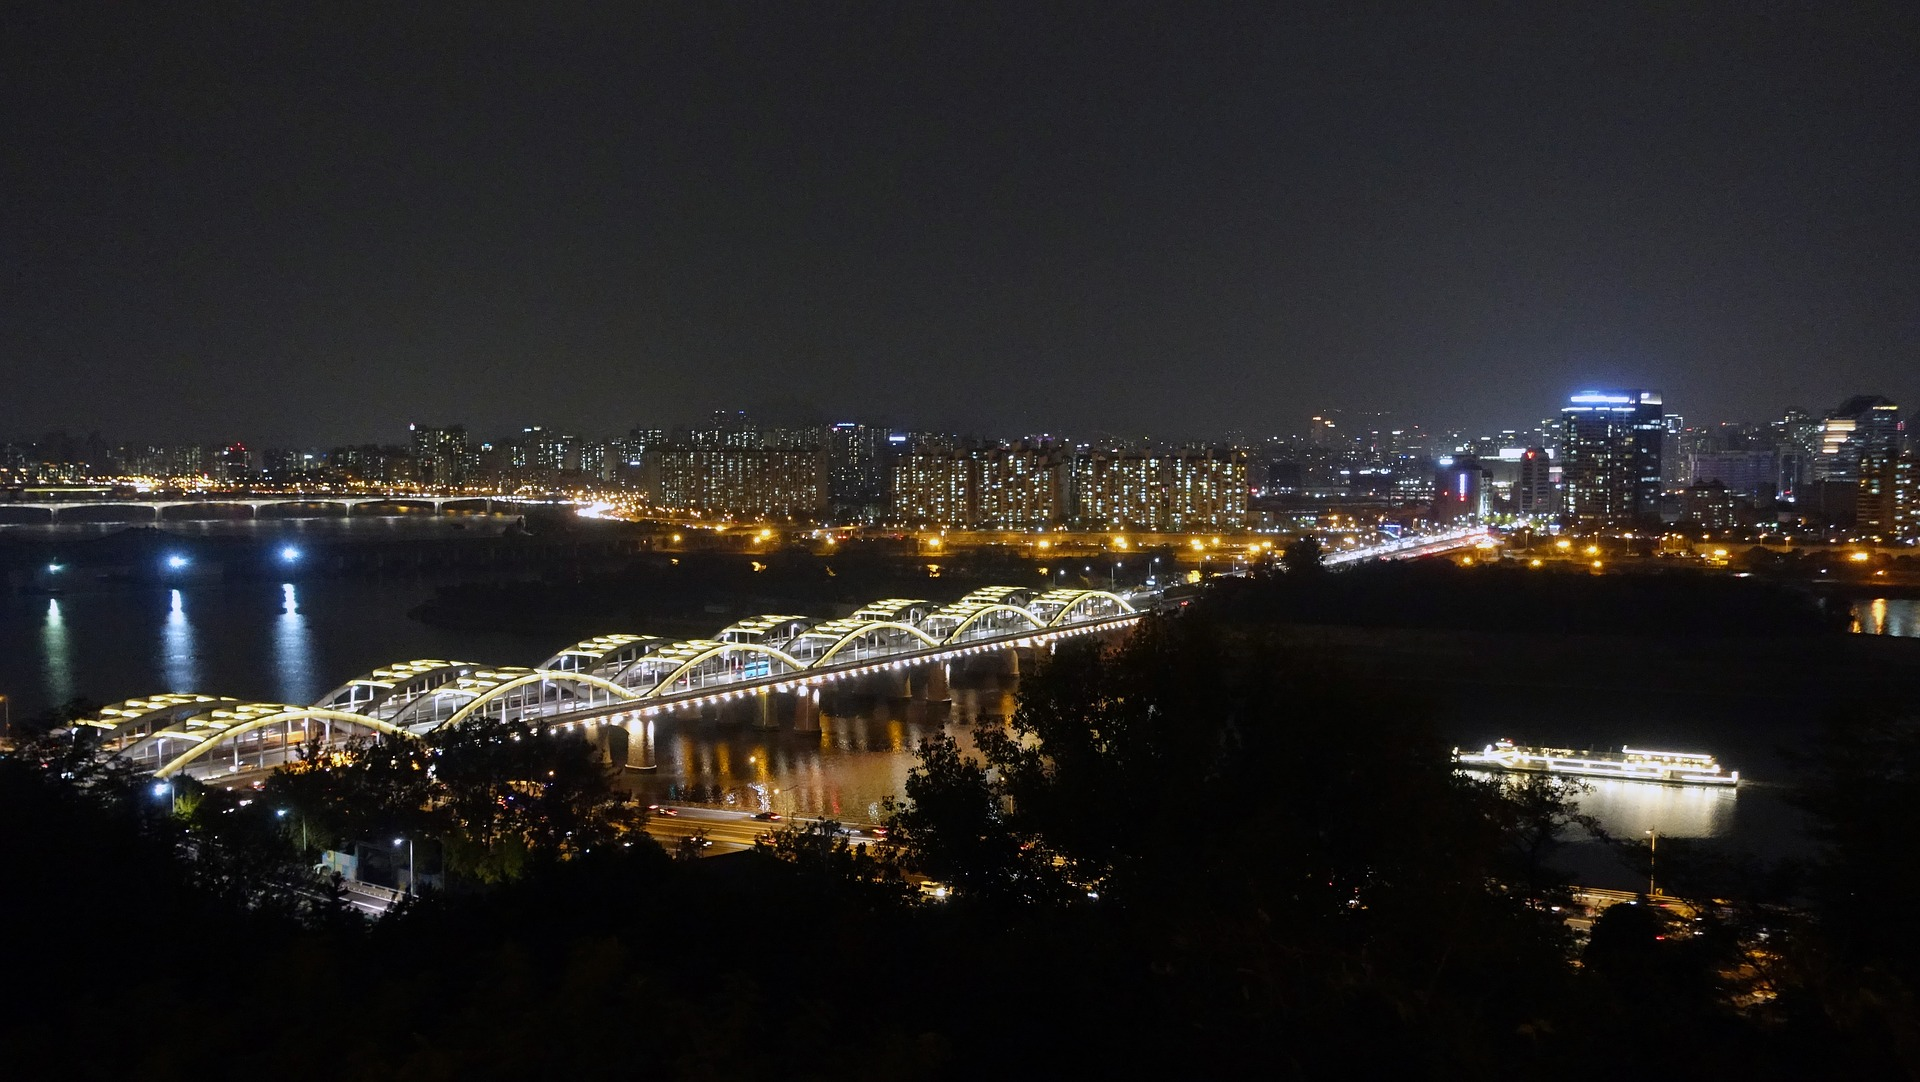 The Hangang Bridge (literally Han River bridge), Seoul, South Korea